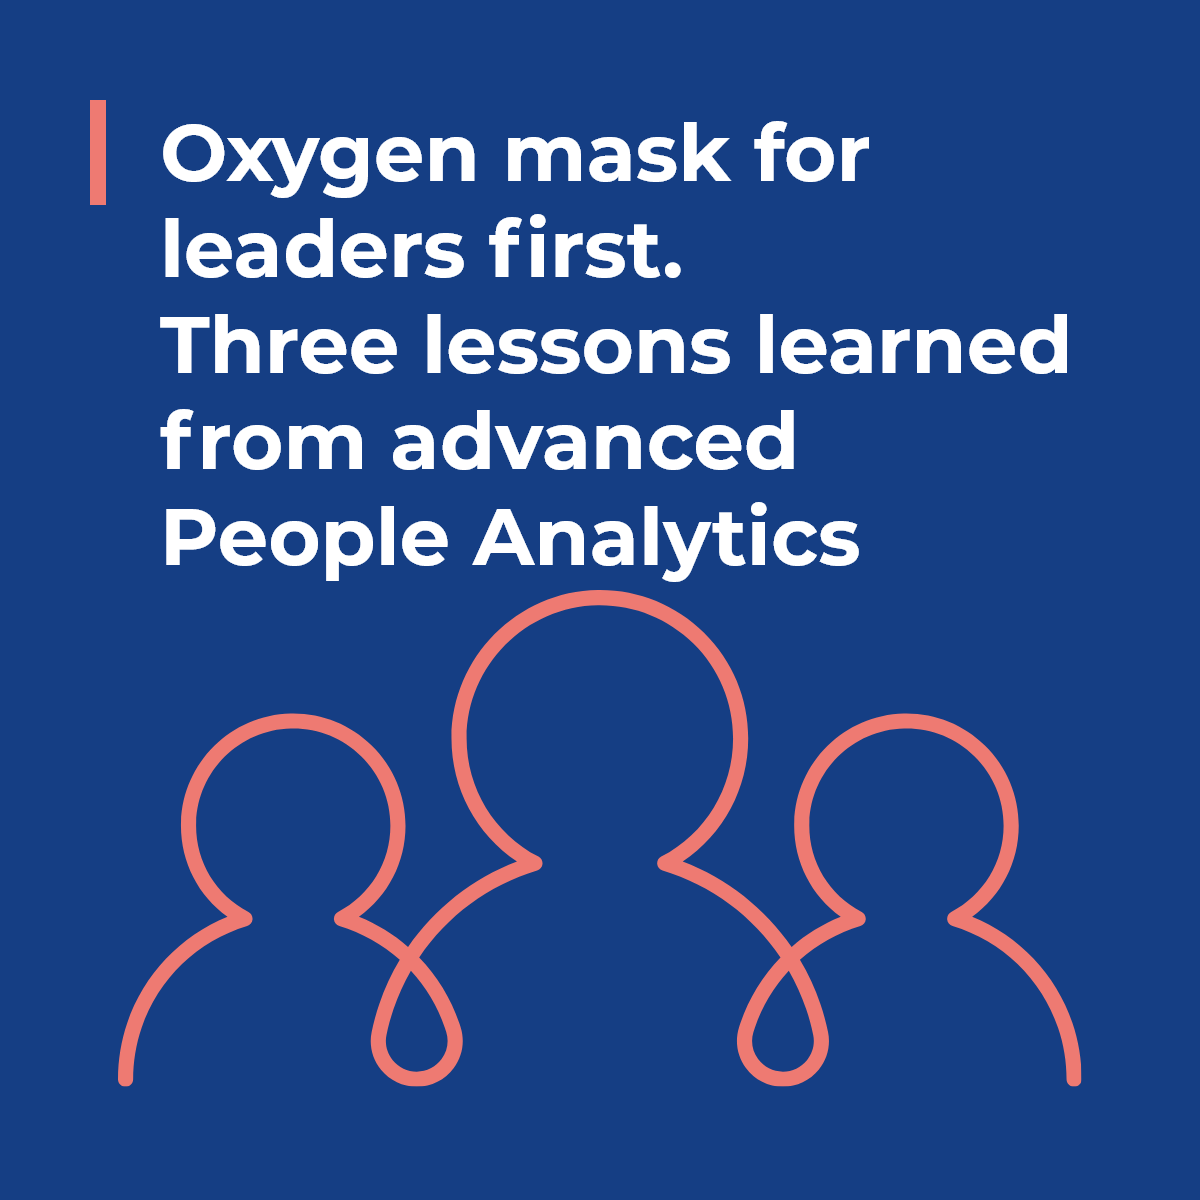 Oxygen mask for leaders first. Three lessons learned from advanced People Analytics